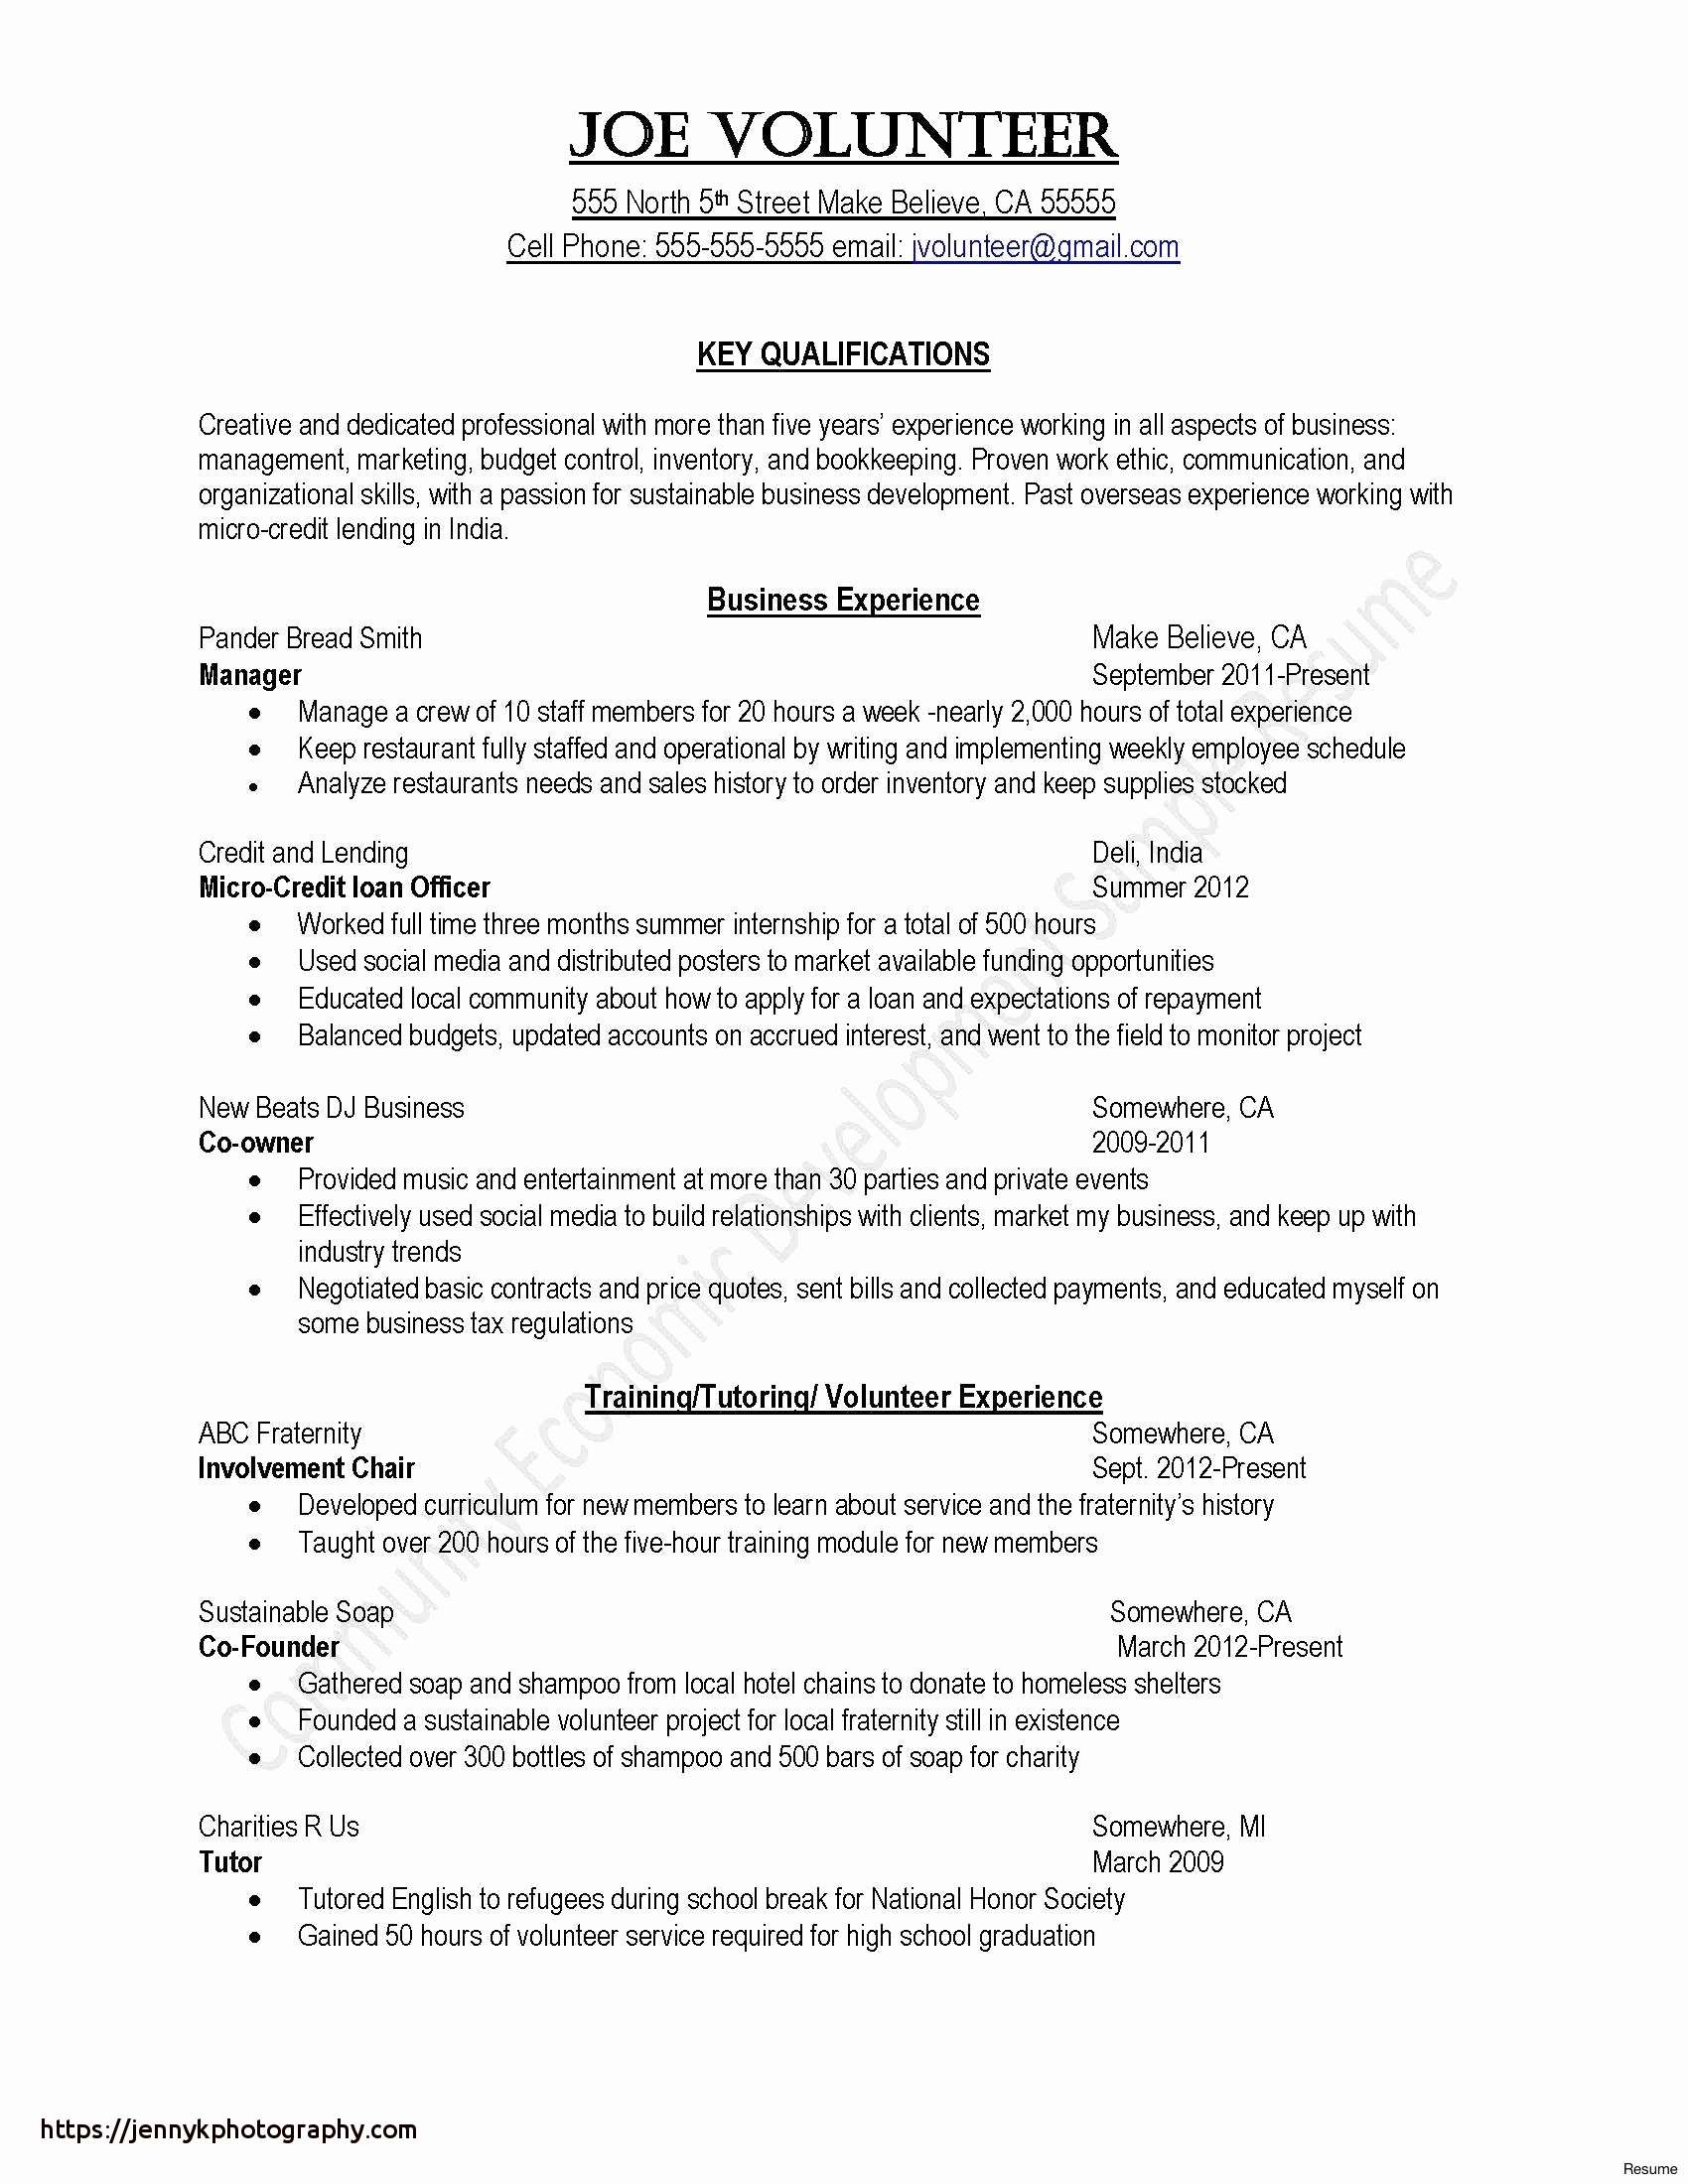 correctional officer resume template example-Correctional ficer Cover Letter Lovely Police Ficer Resume Example Luxury Correctional Ficer Skills 31 Awesome 17-h